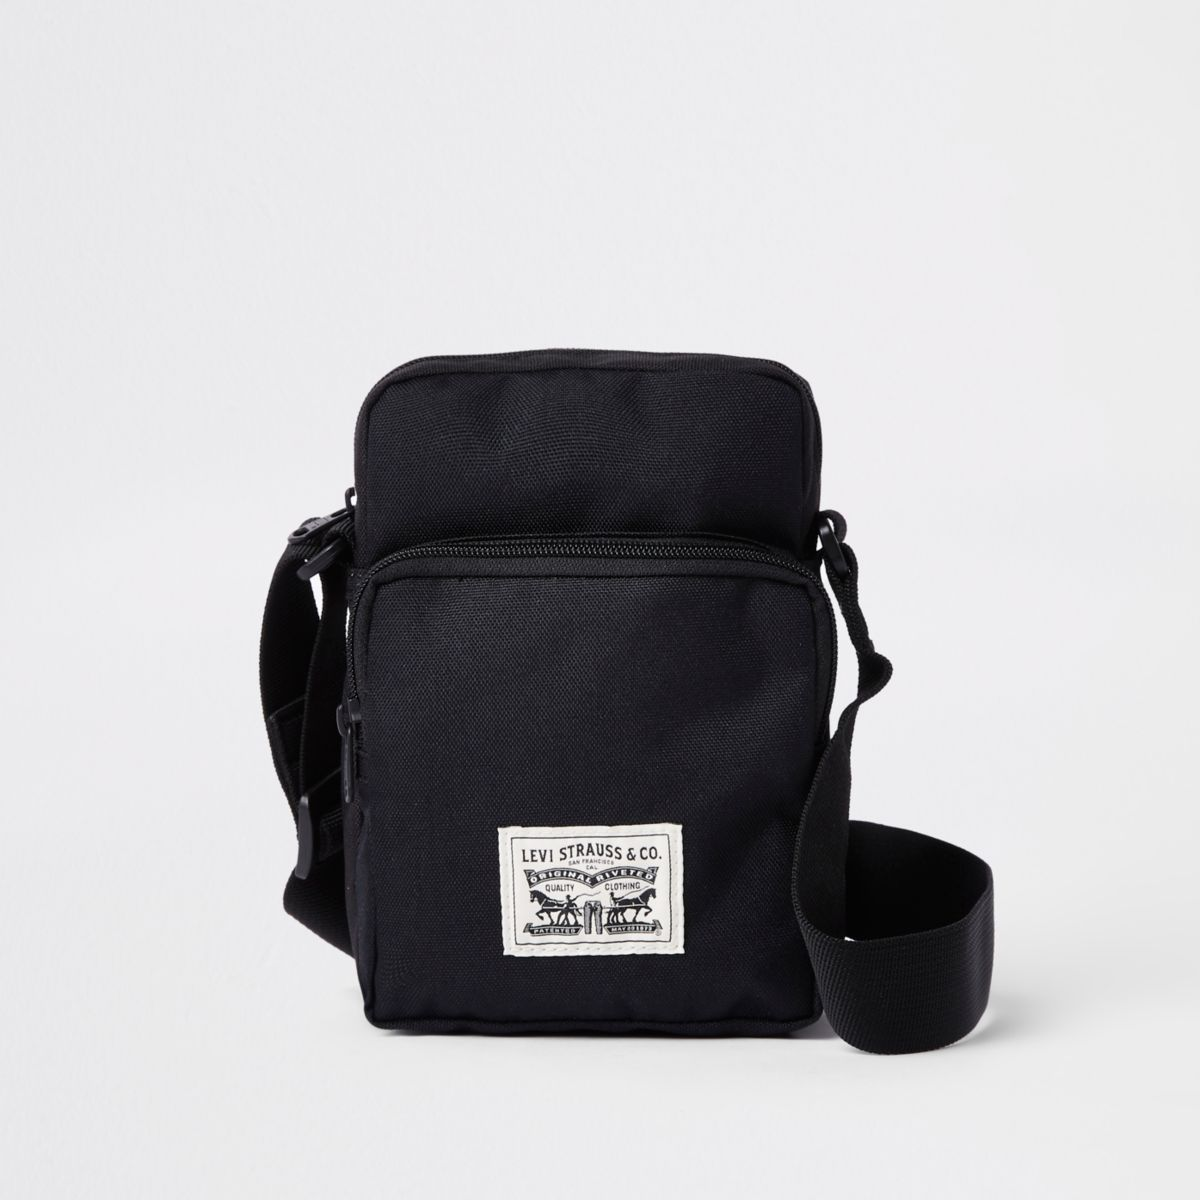 Levi's black cross body bag